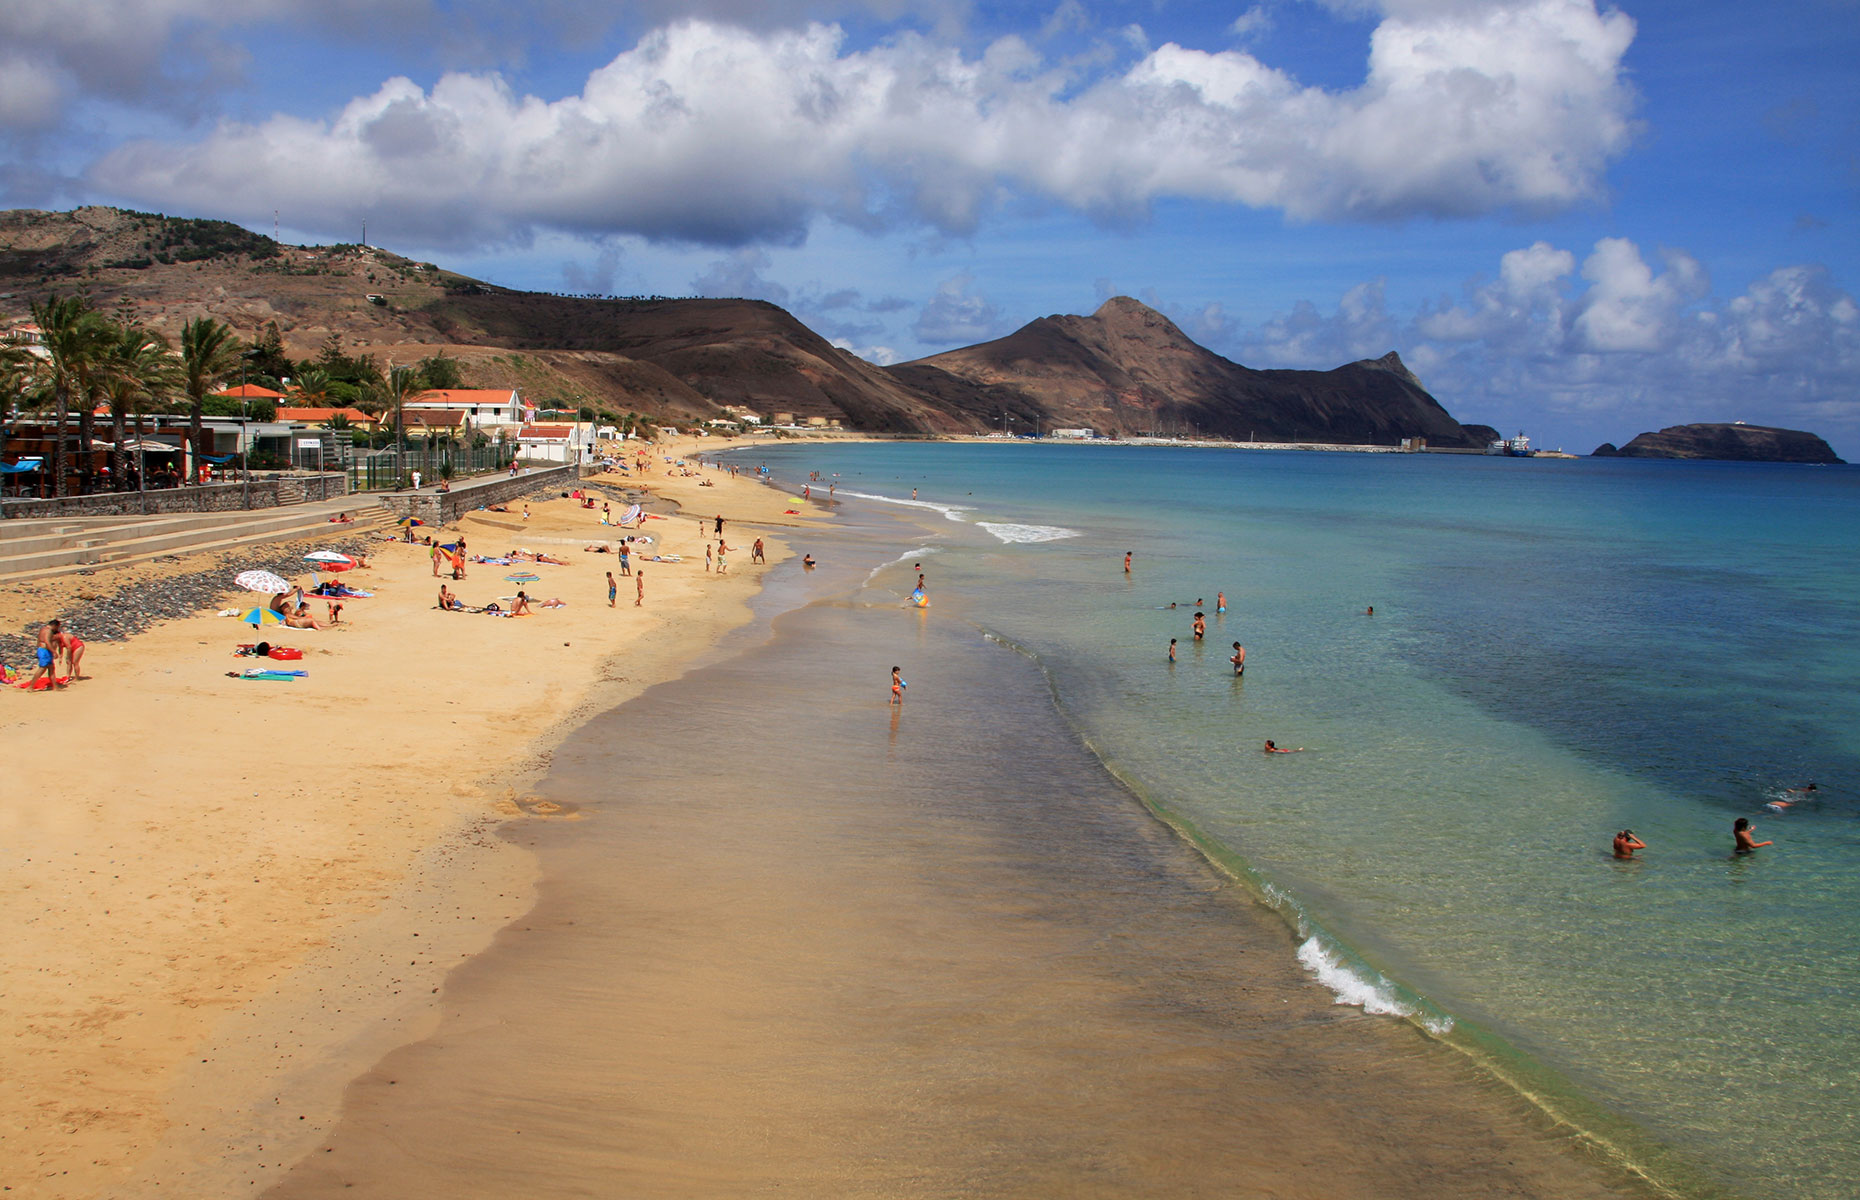 Porto Santo Beach, two-hours' from Funchal (image: Francisco Caravana/Shutterstock)